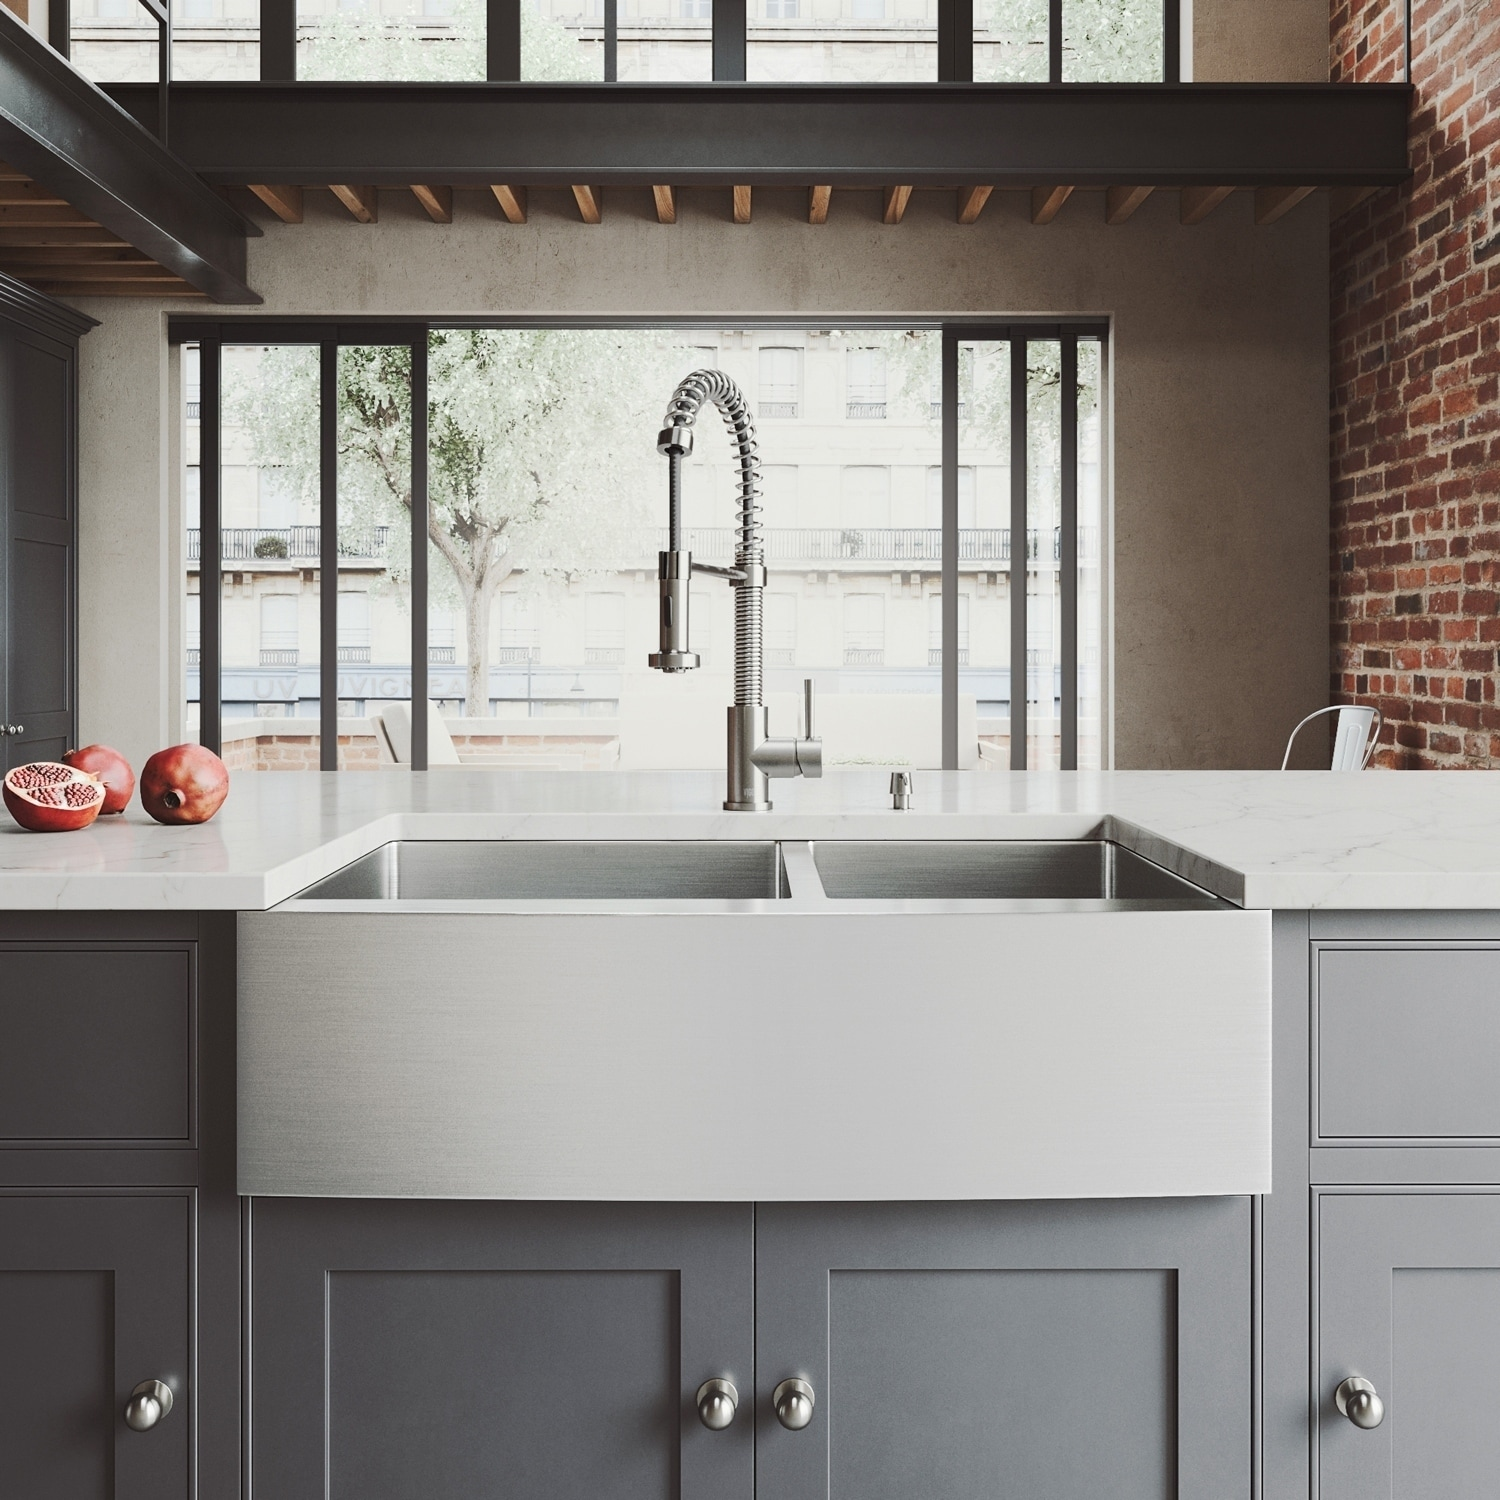 Buy Undermount Sink & Faucet Sets Online at Overstock.com | Our Best ...